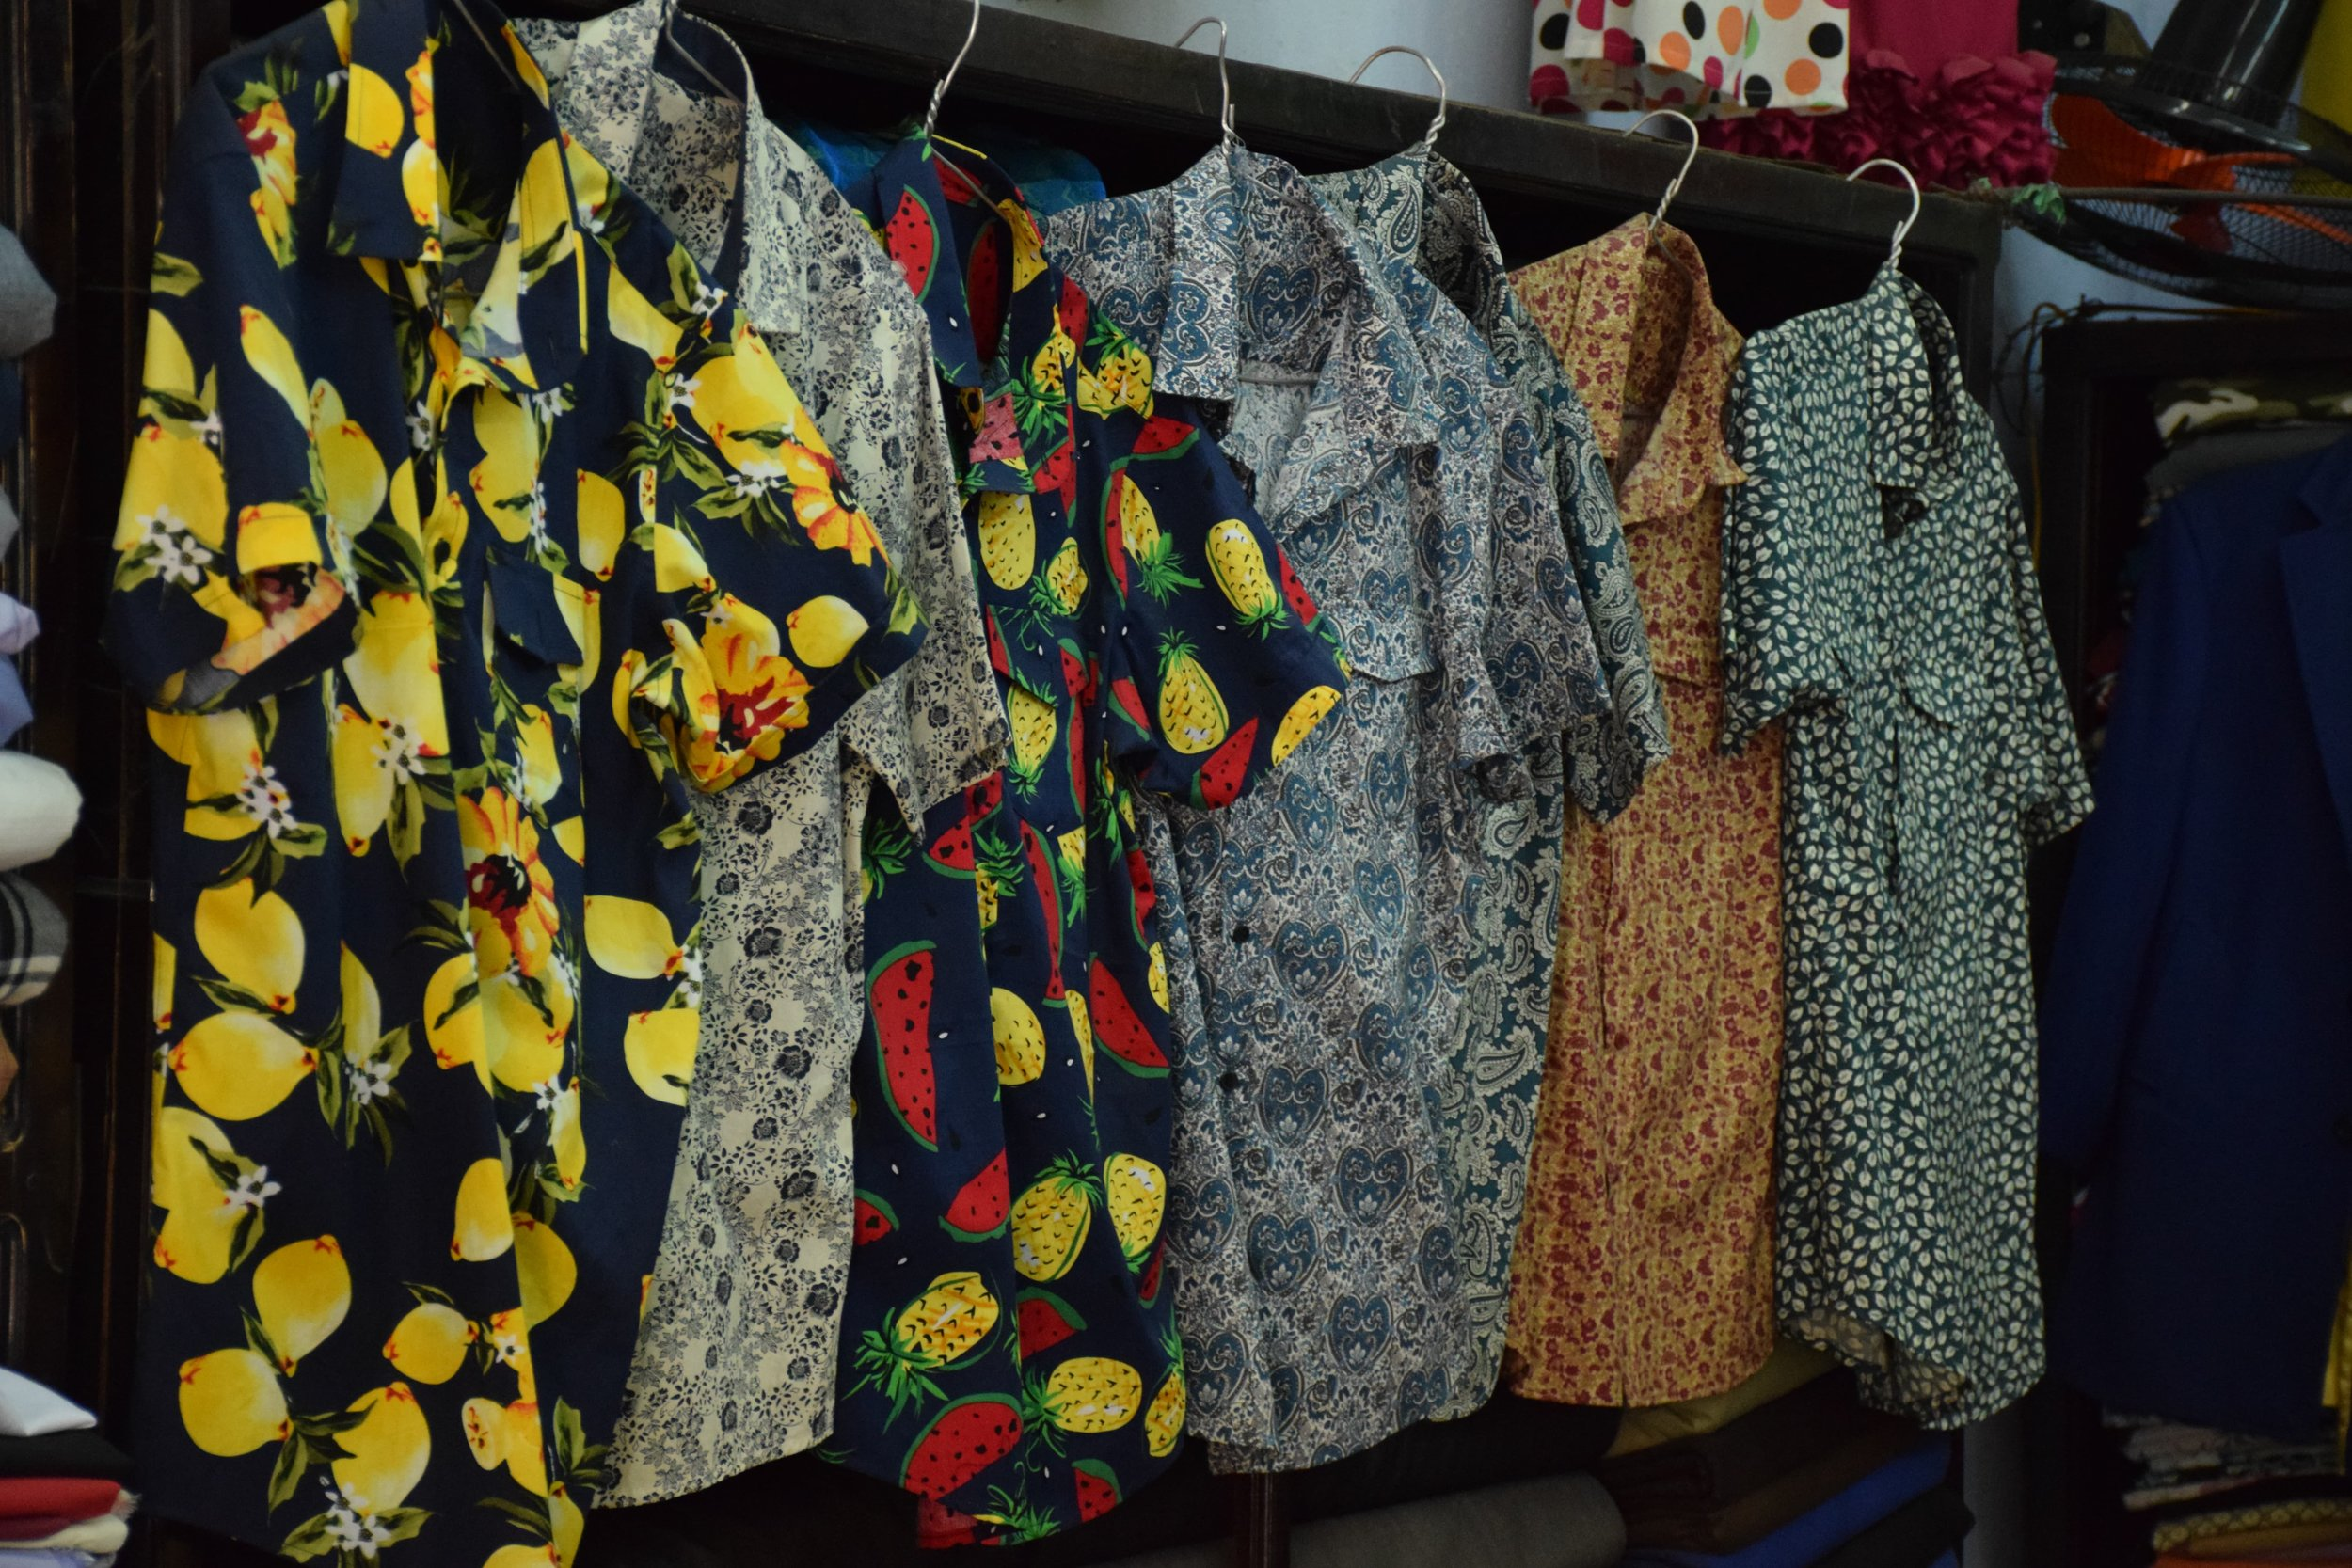 You can get your very own banana shirt or other crazy print shirt made for super cheap.